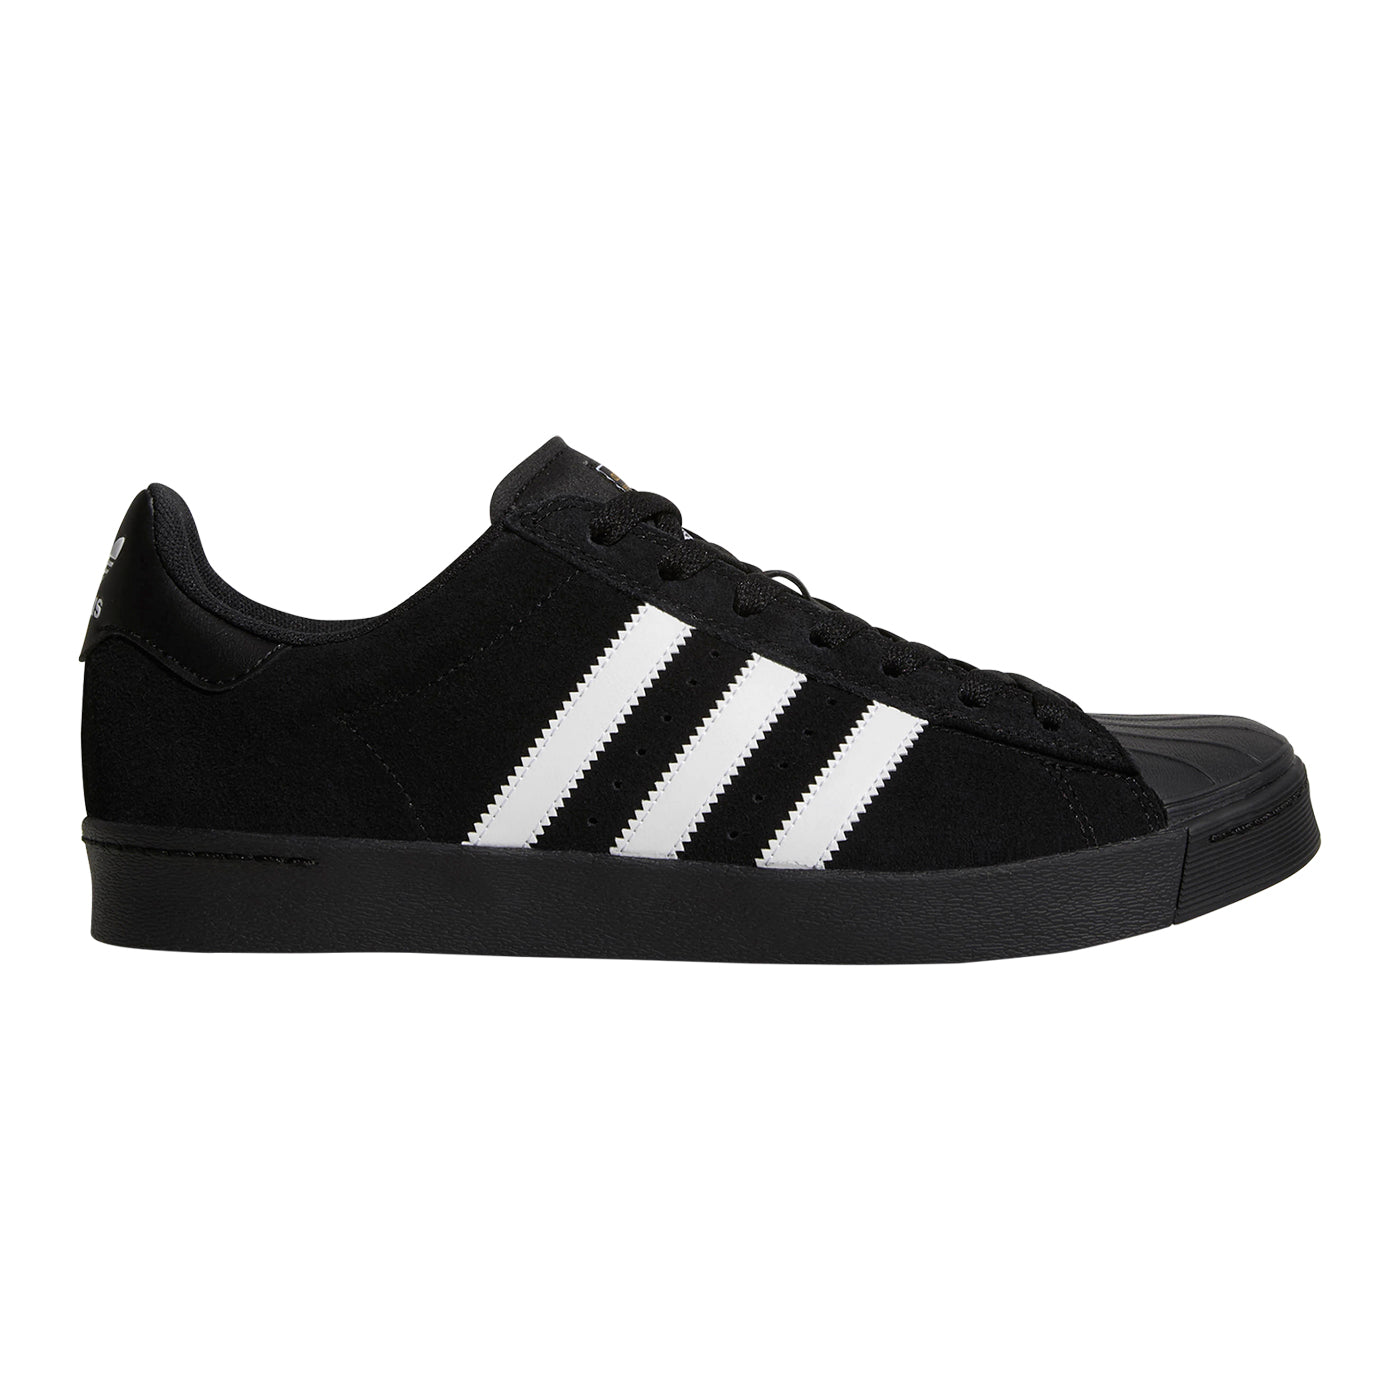 Adidas Skateboarding Superstar Vulc ADV Shoes - Core Black   Footwear White    Core Black 618f7b9b4